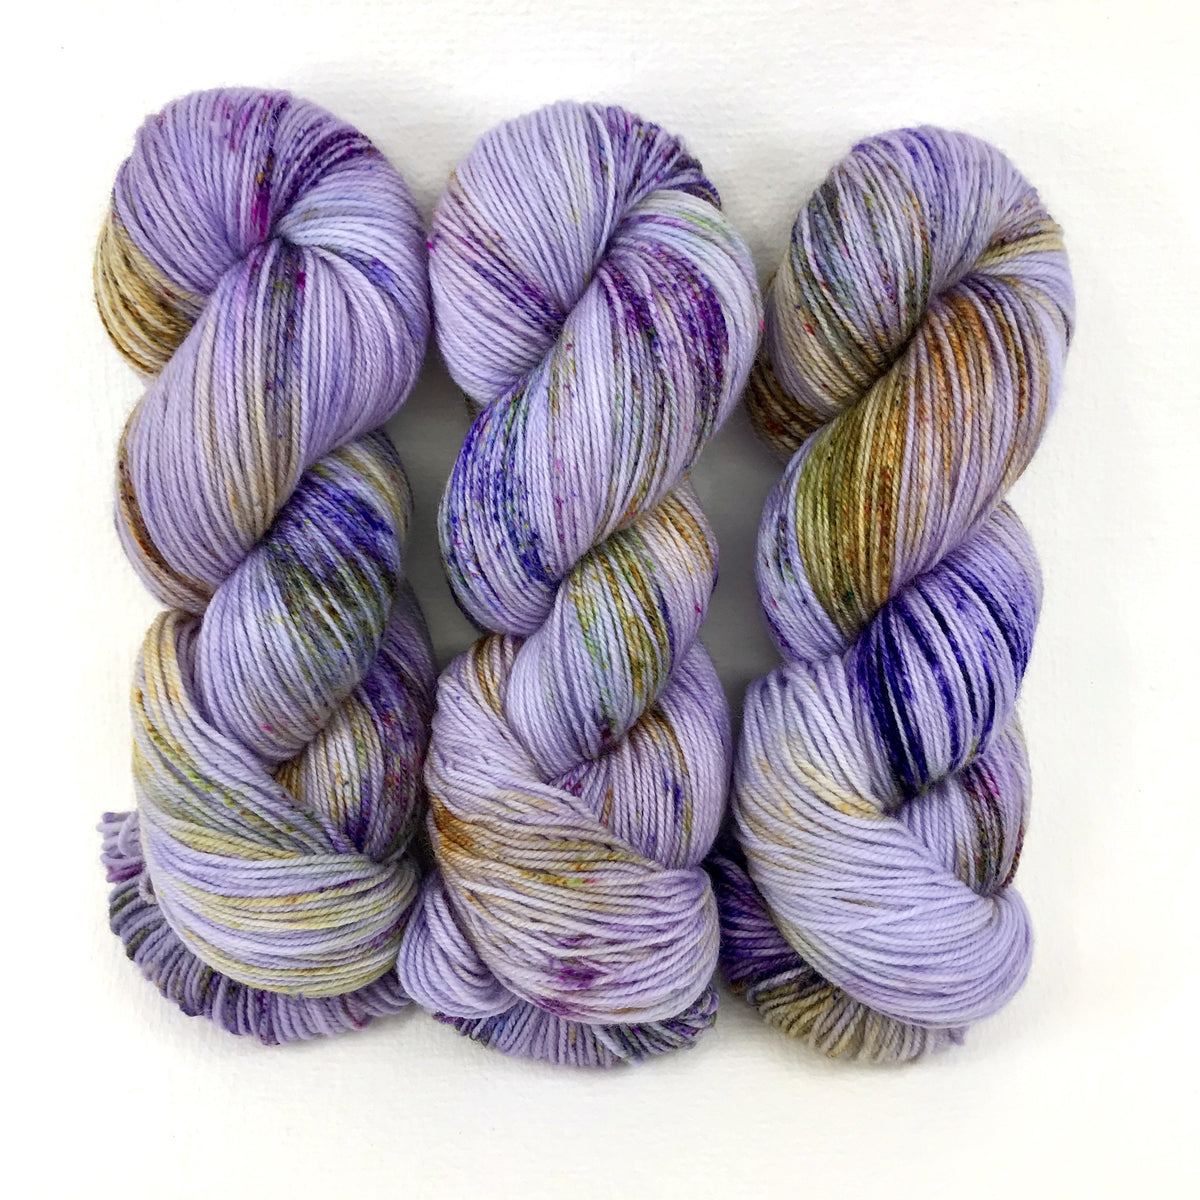 Lavender Fields Forever in Worsted Weight